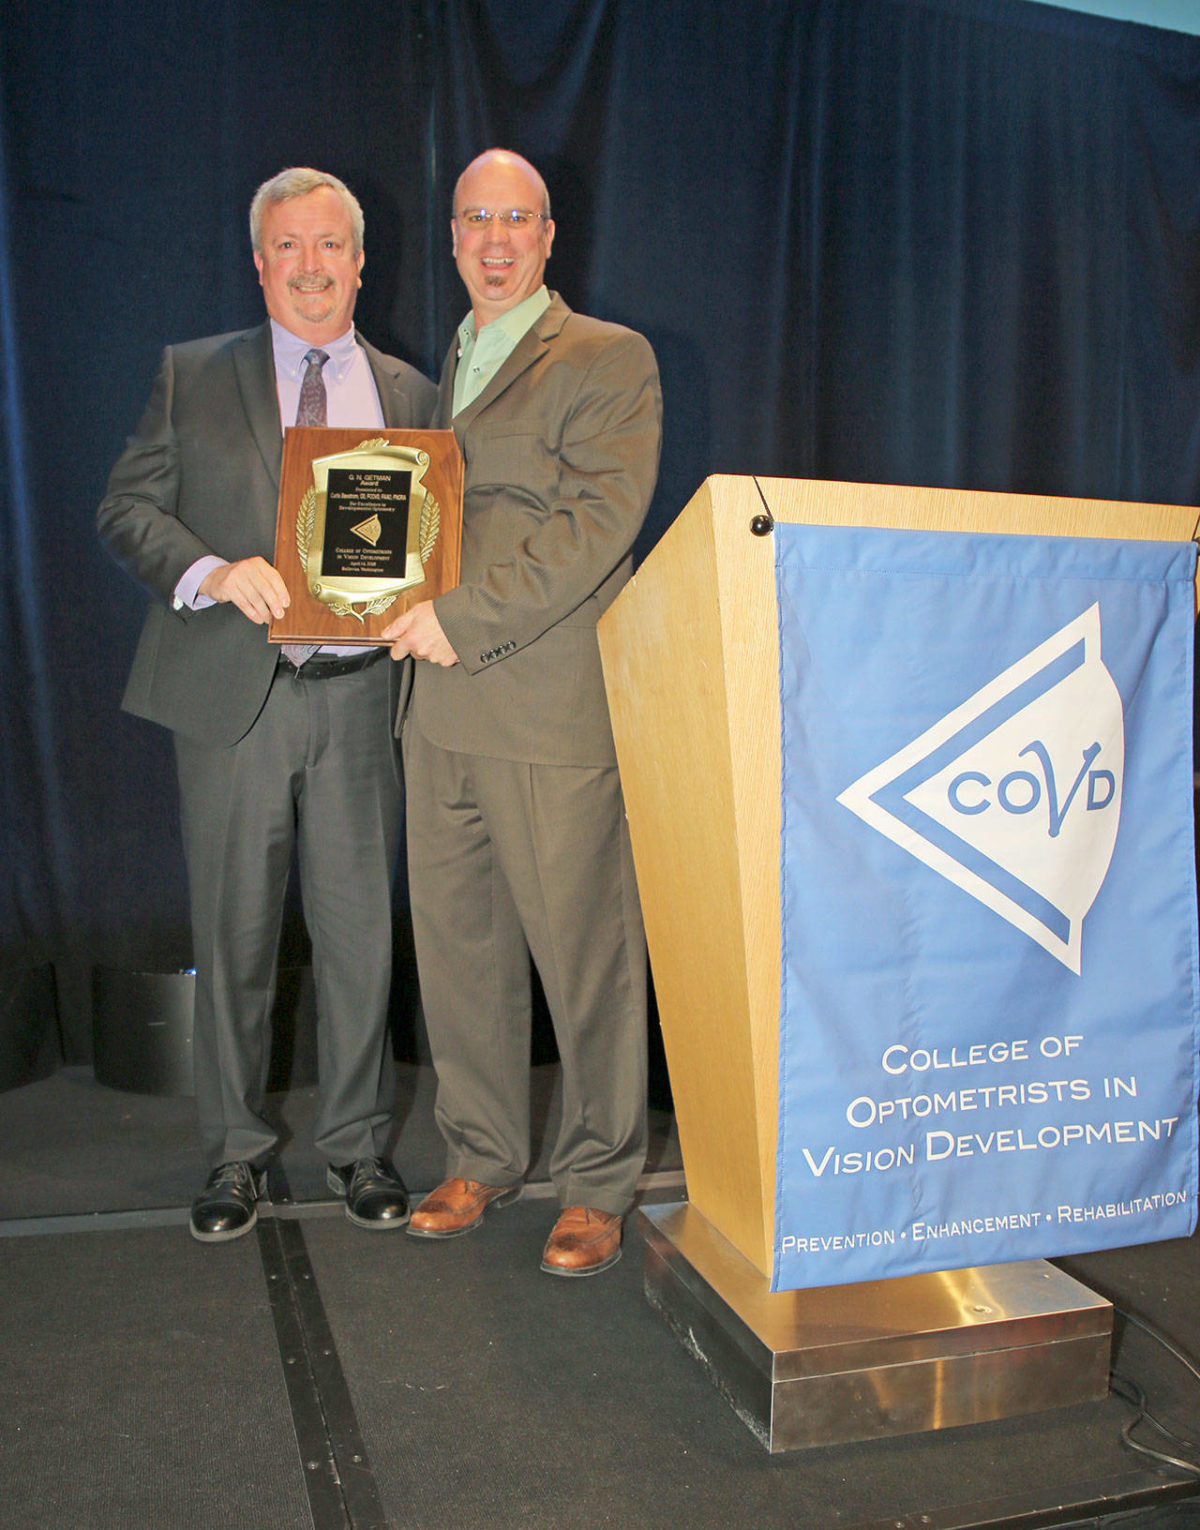 Curtis Baxstrom receiving the G.N. Getman Award